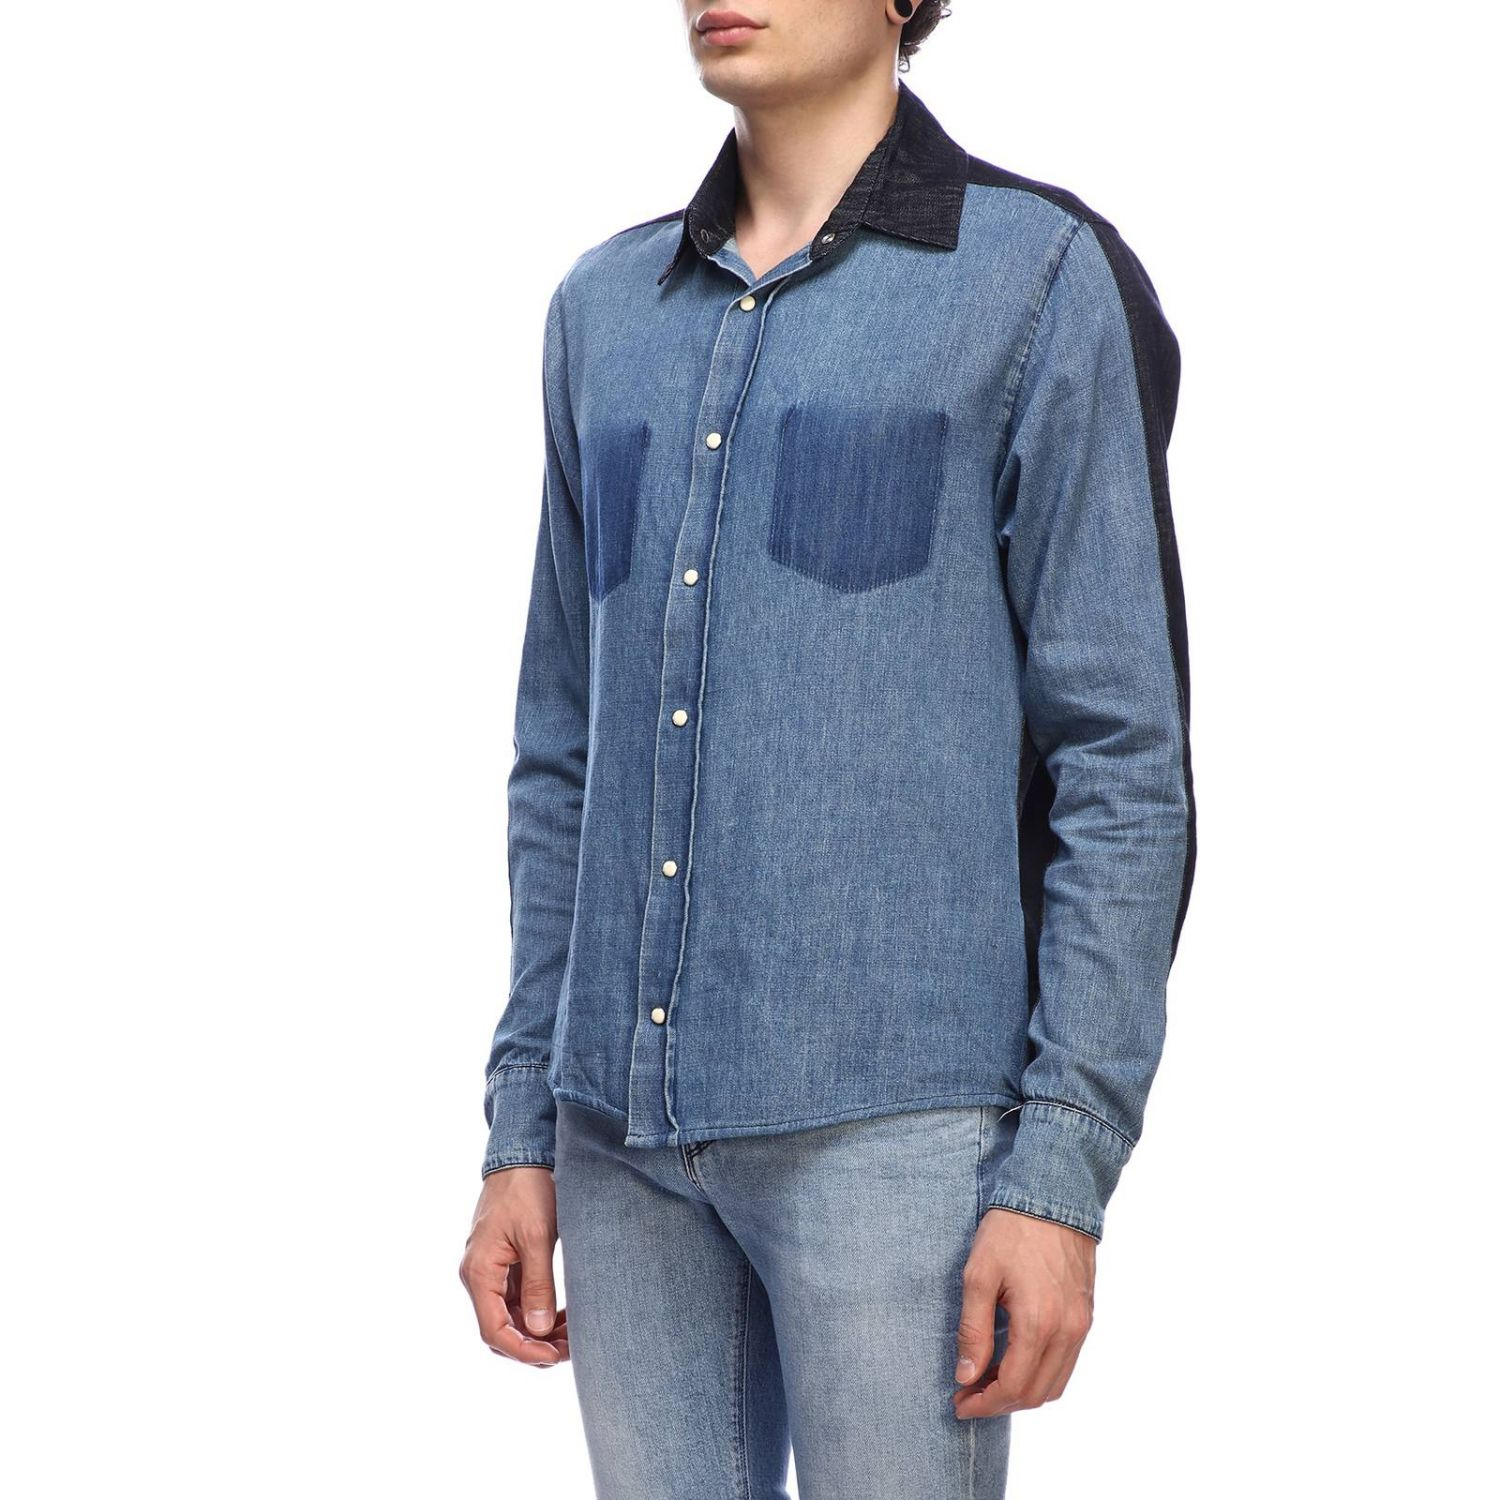 Shirt men Rta denim 2